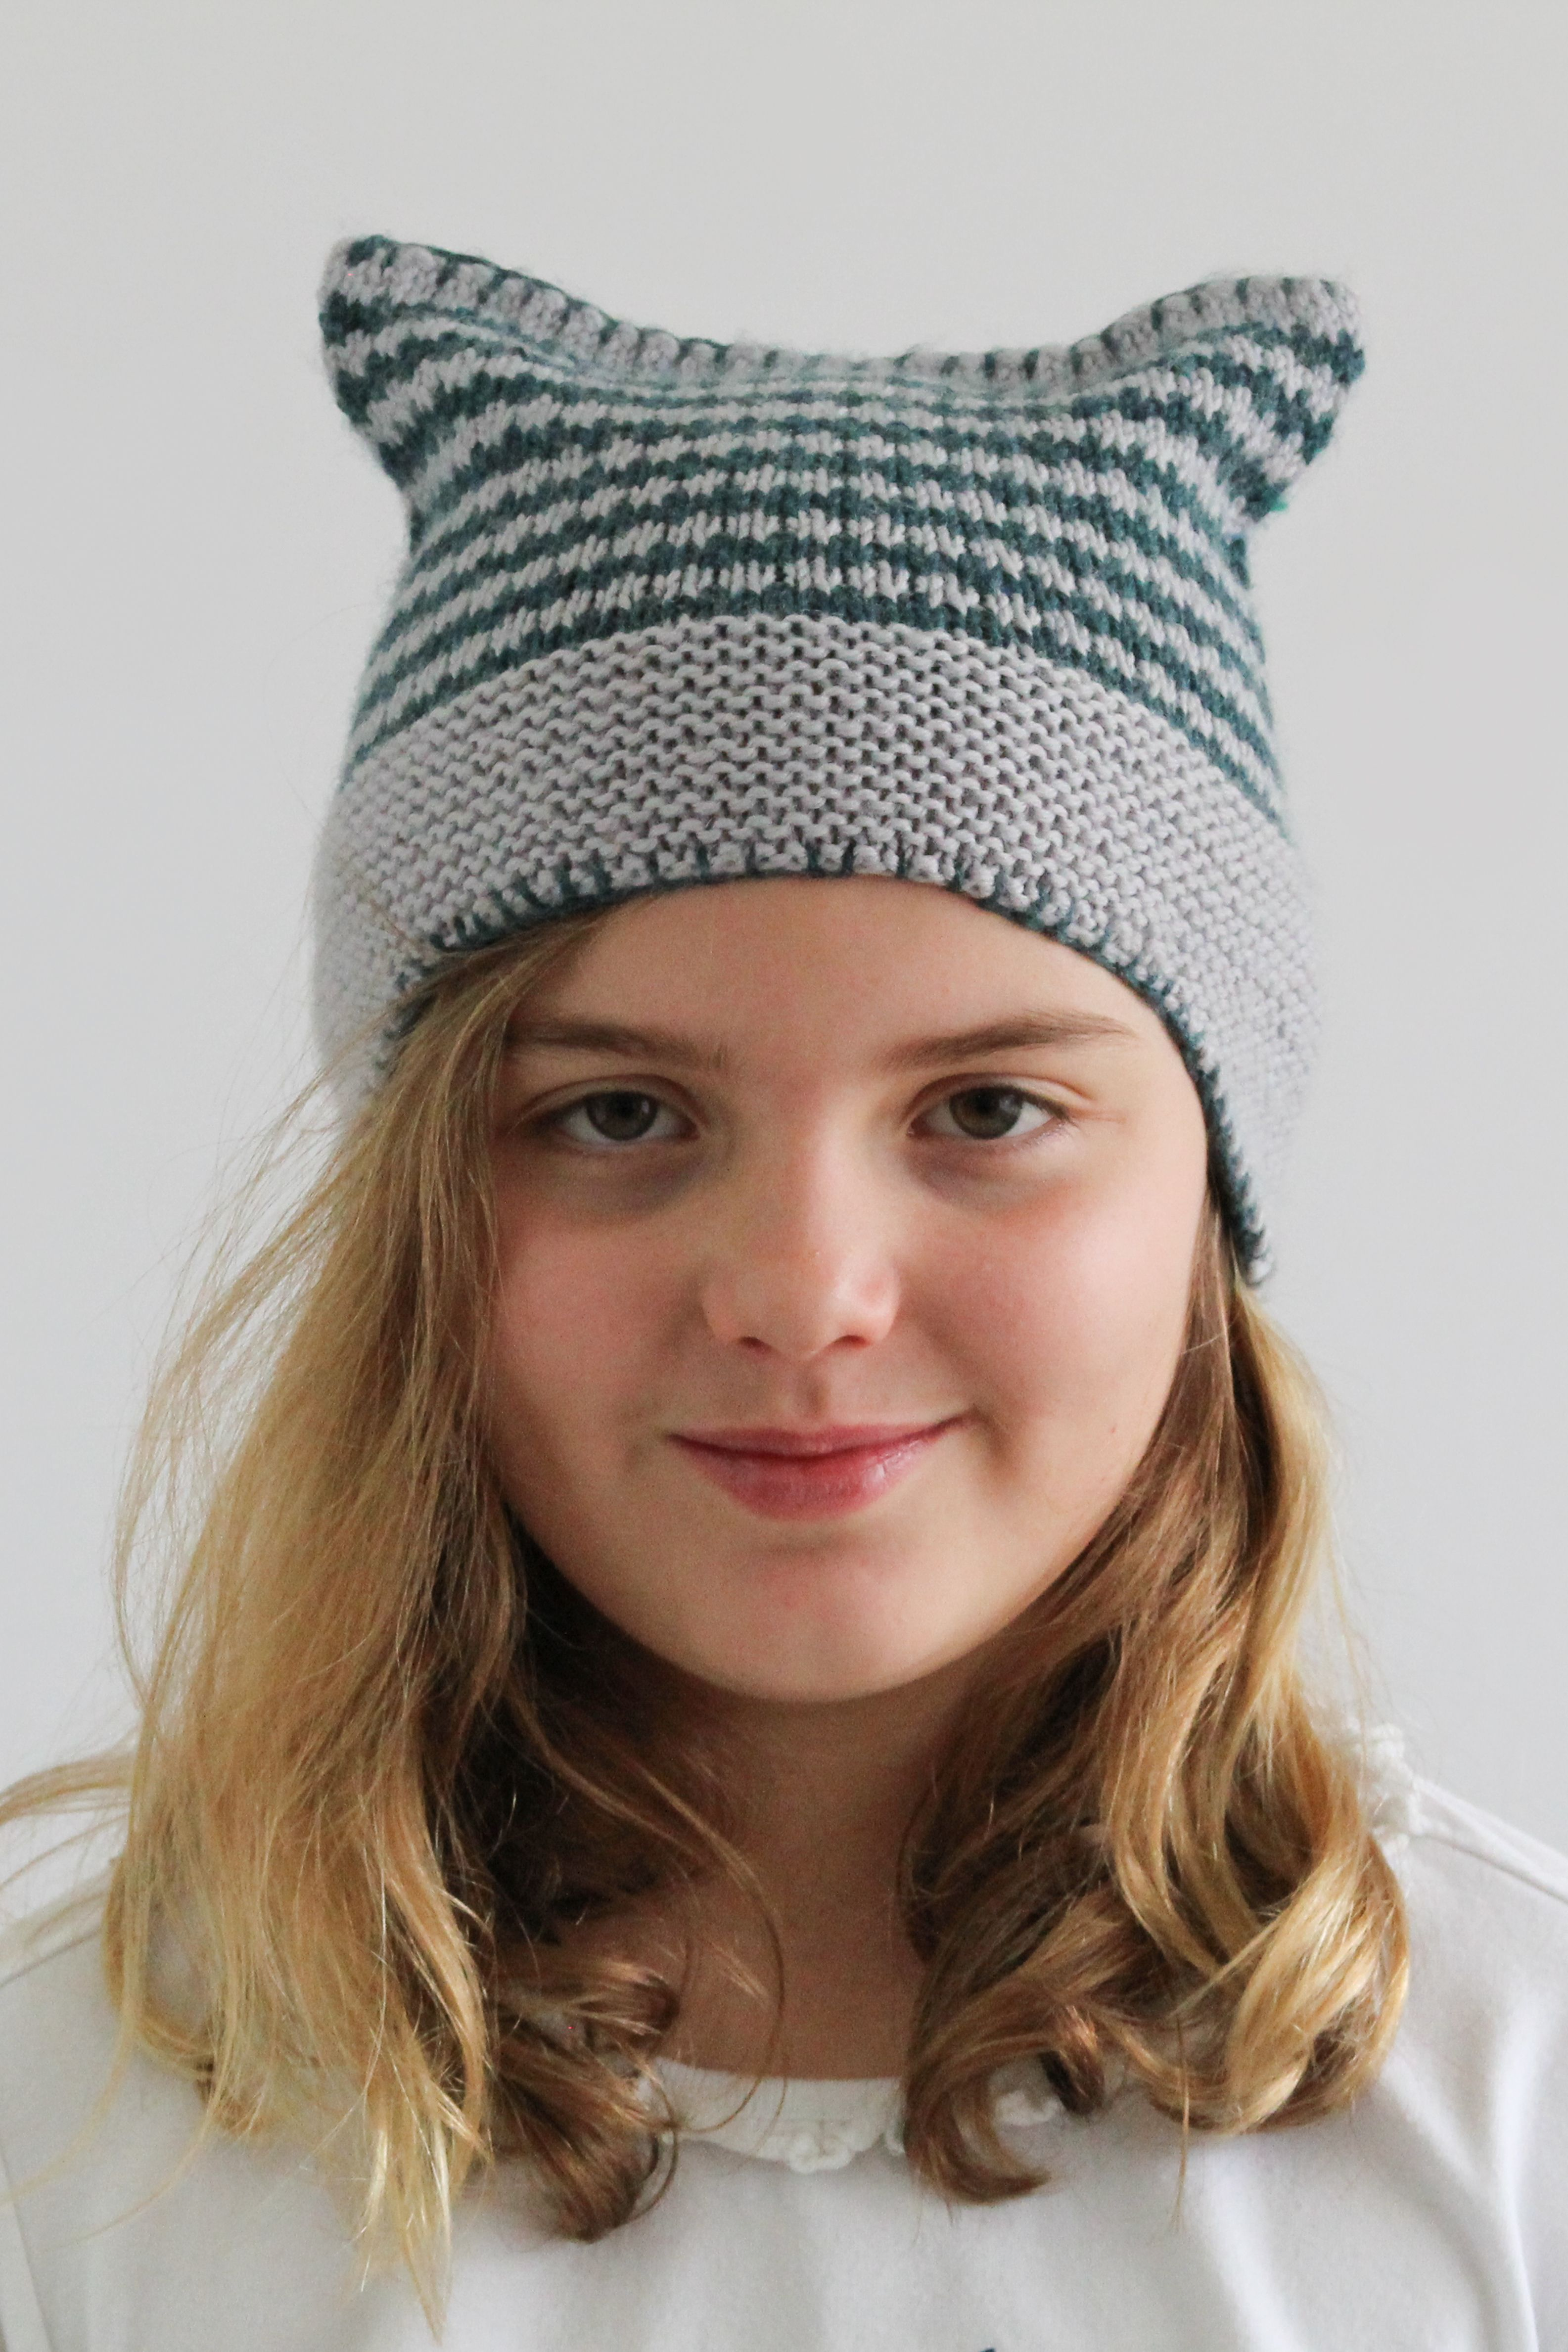 3a336ef0825a7 This hat is the perfect knitting project to make for your little sour patch  kid. We have the knitting pattern for  6.00!